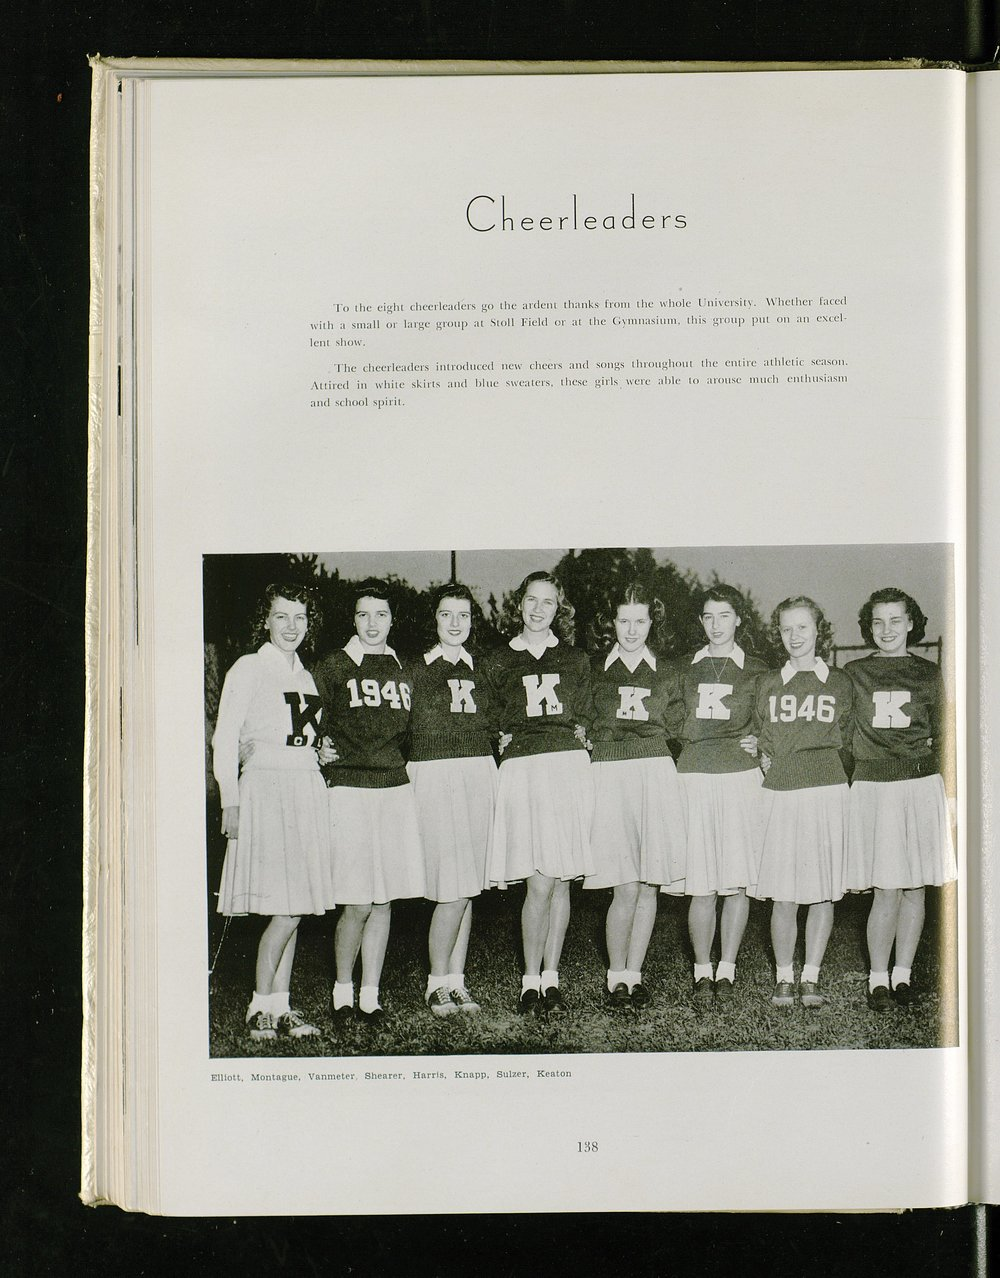 UK Cheerleading Squad 1946